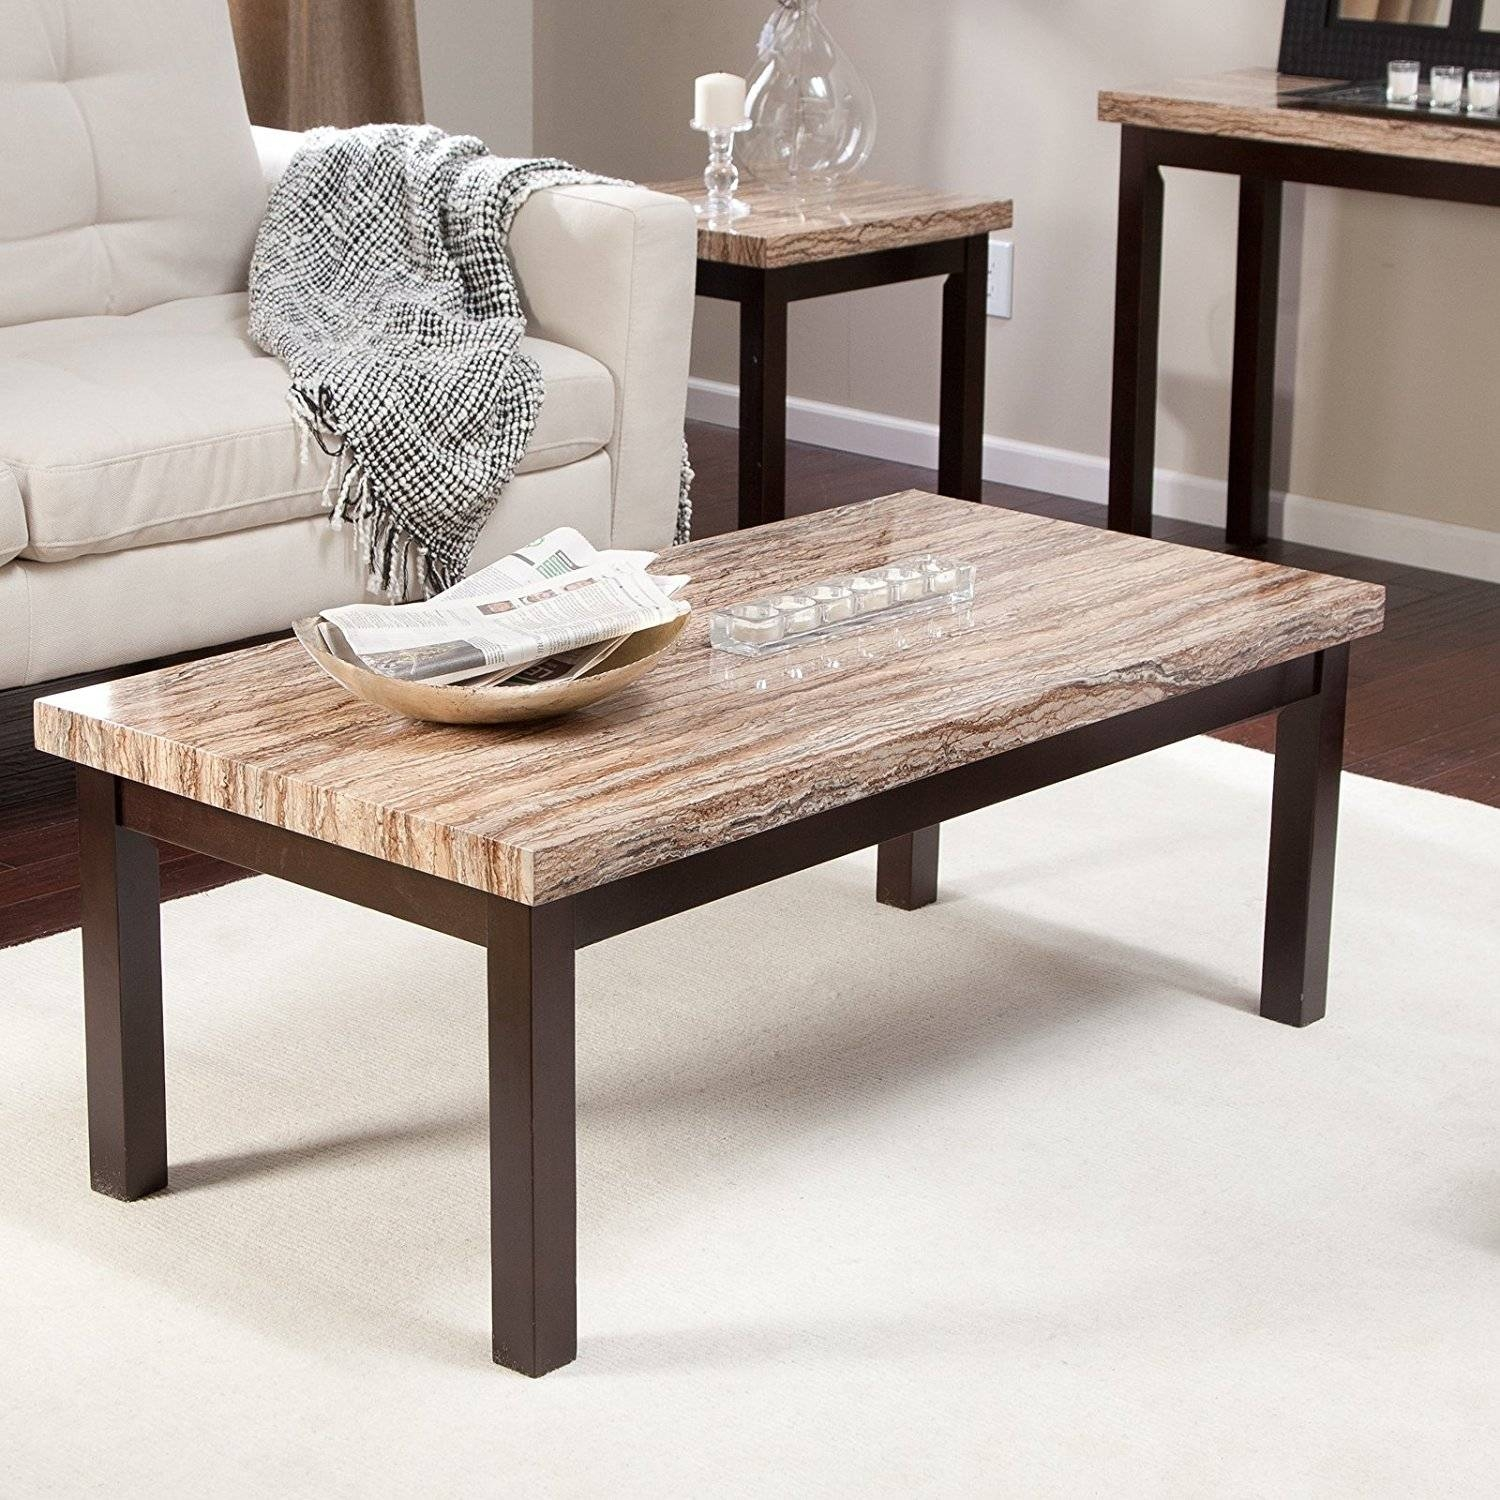 Cheap Coffee Tables Under $100 That Work For Every Style intended for Cheap Coffee Tables (Image 7 of 30)